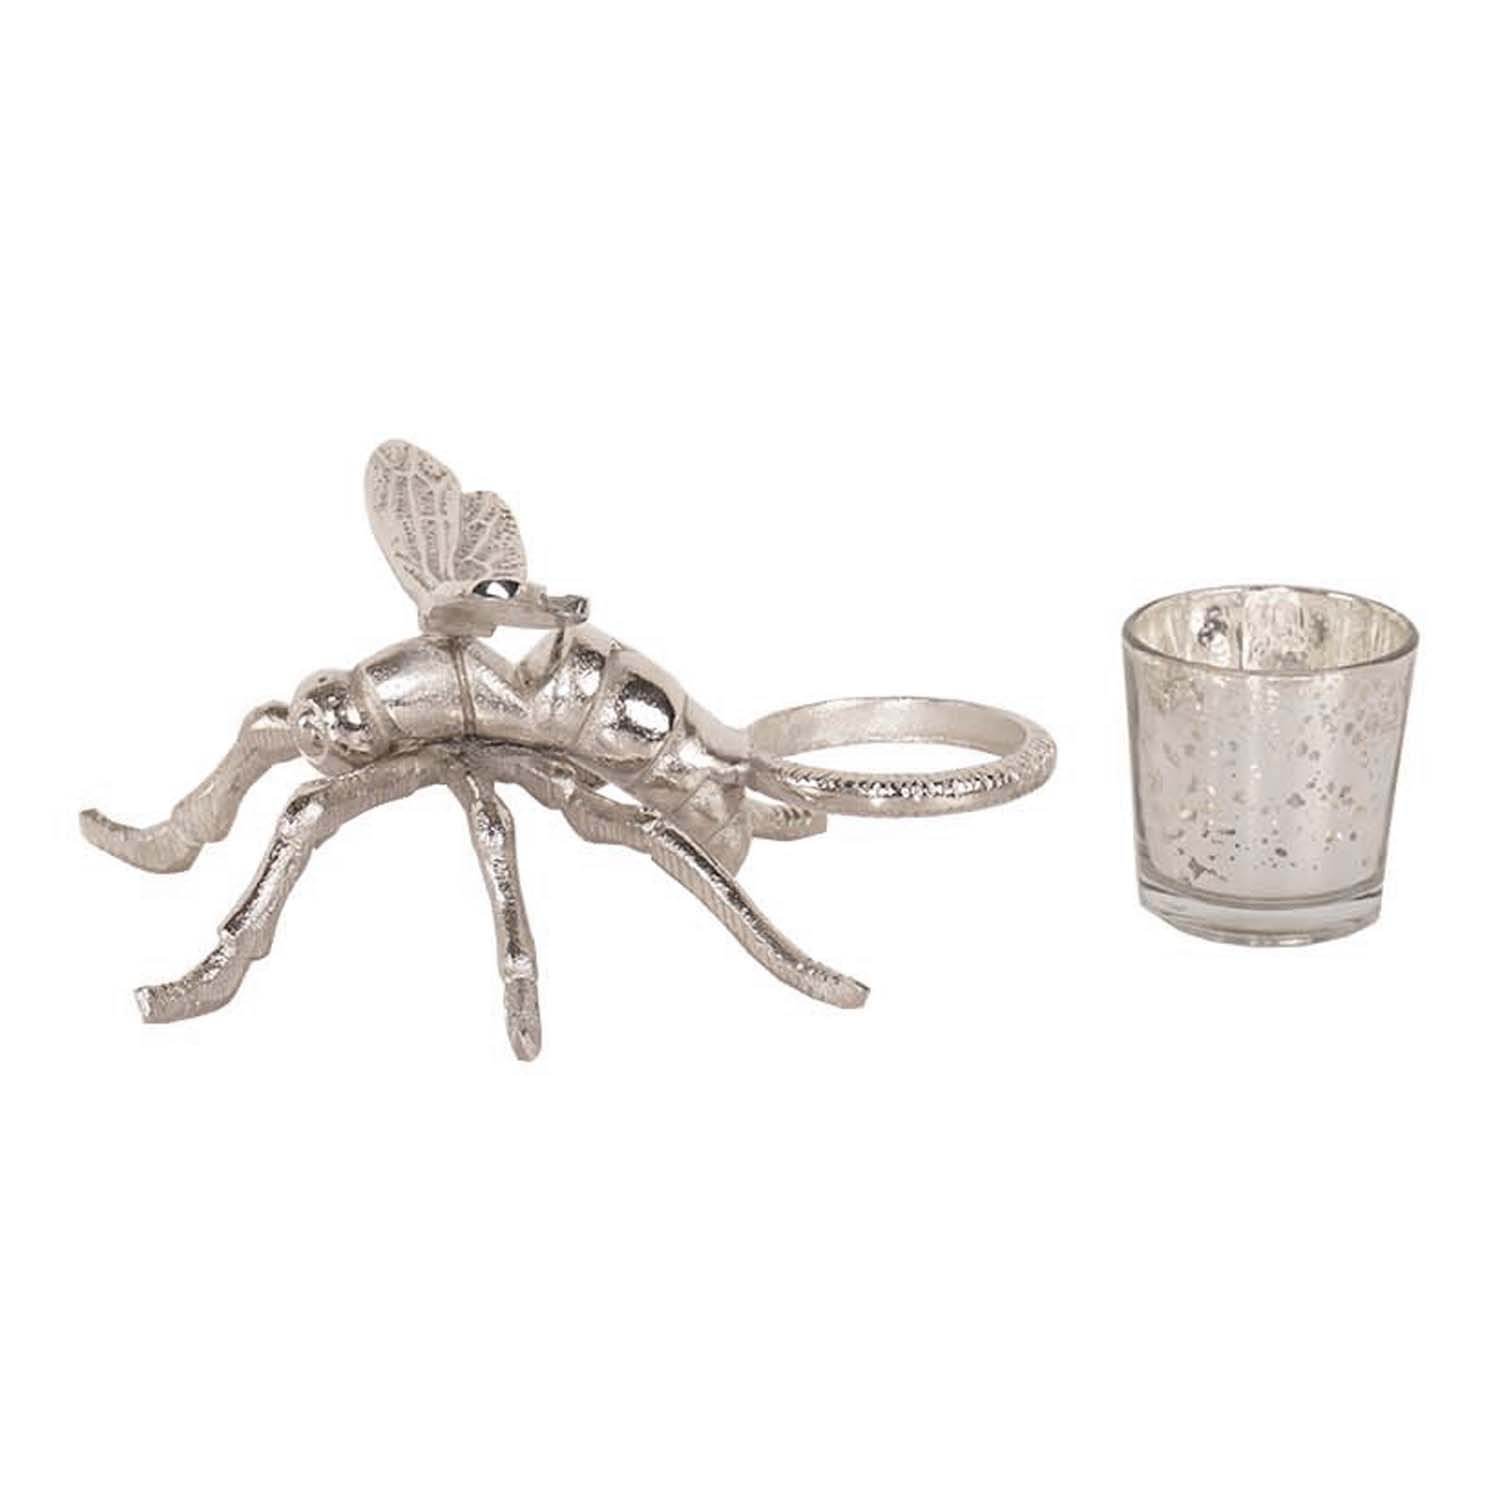 Silver Dragonfly Tealight Holder - Image 4